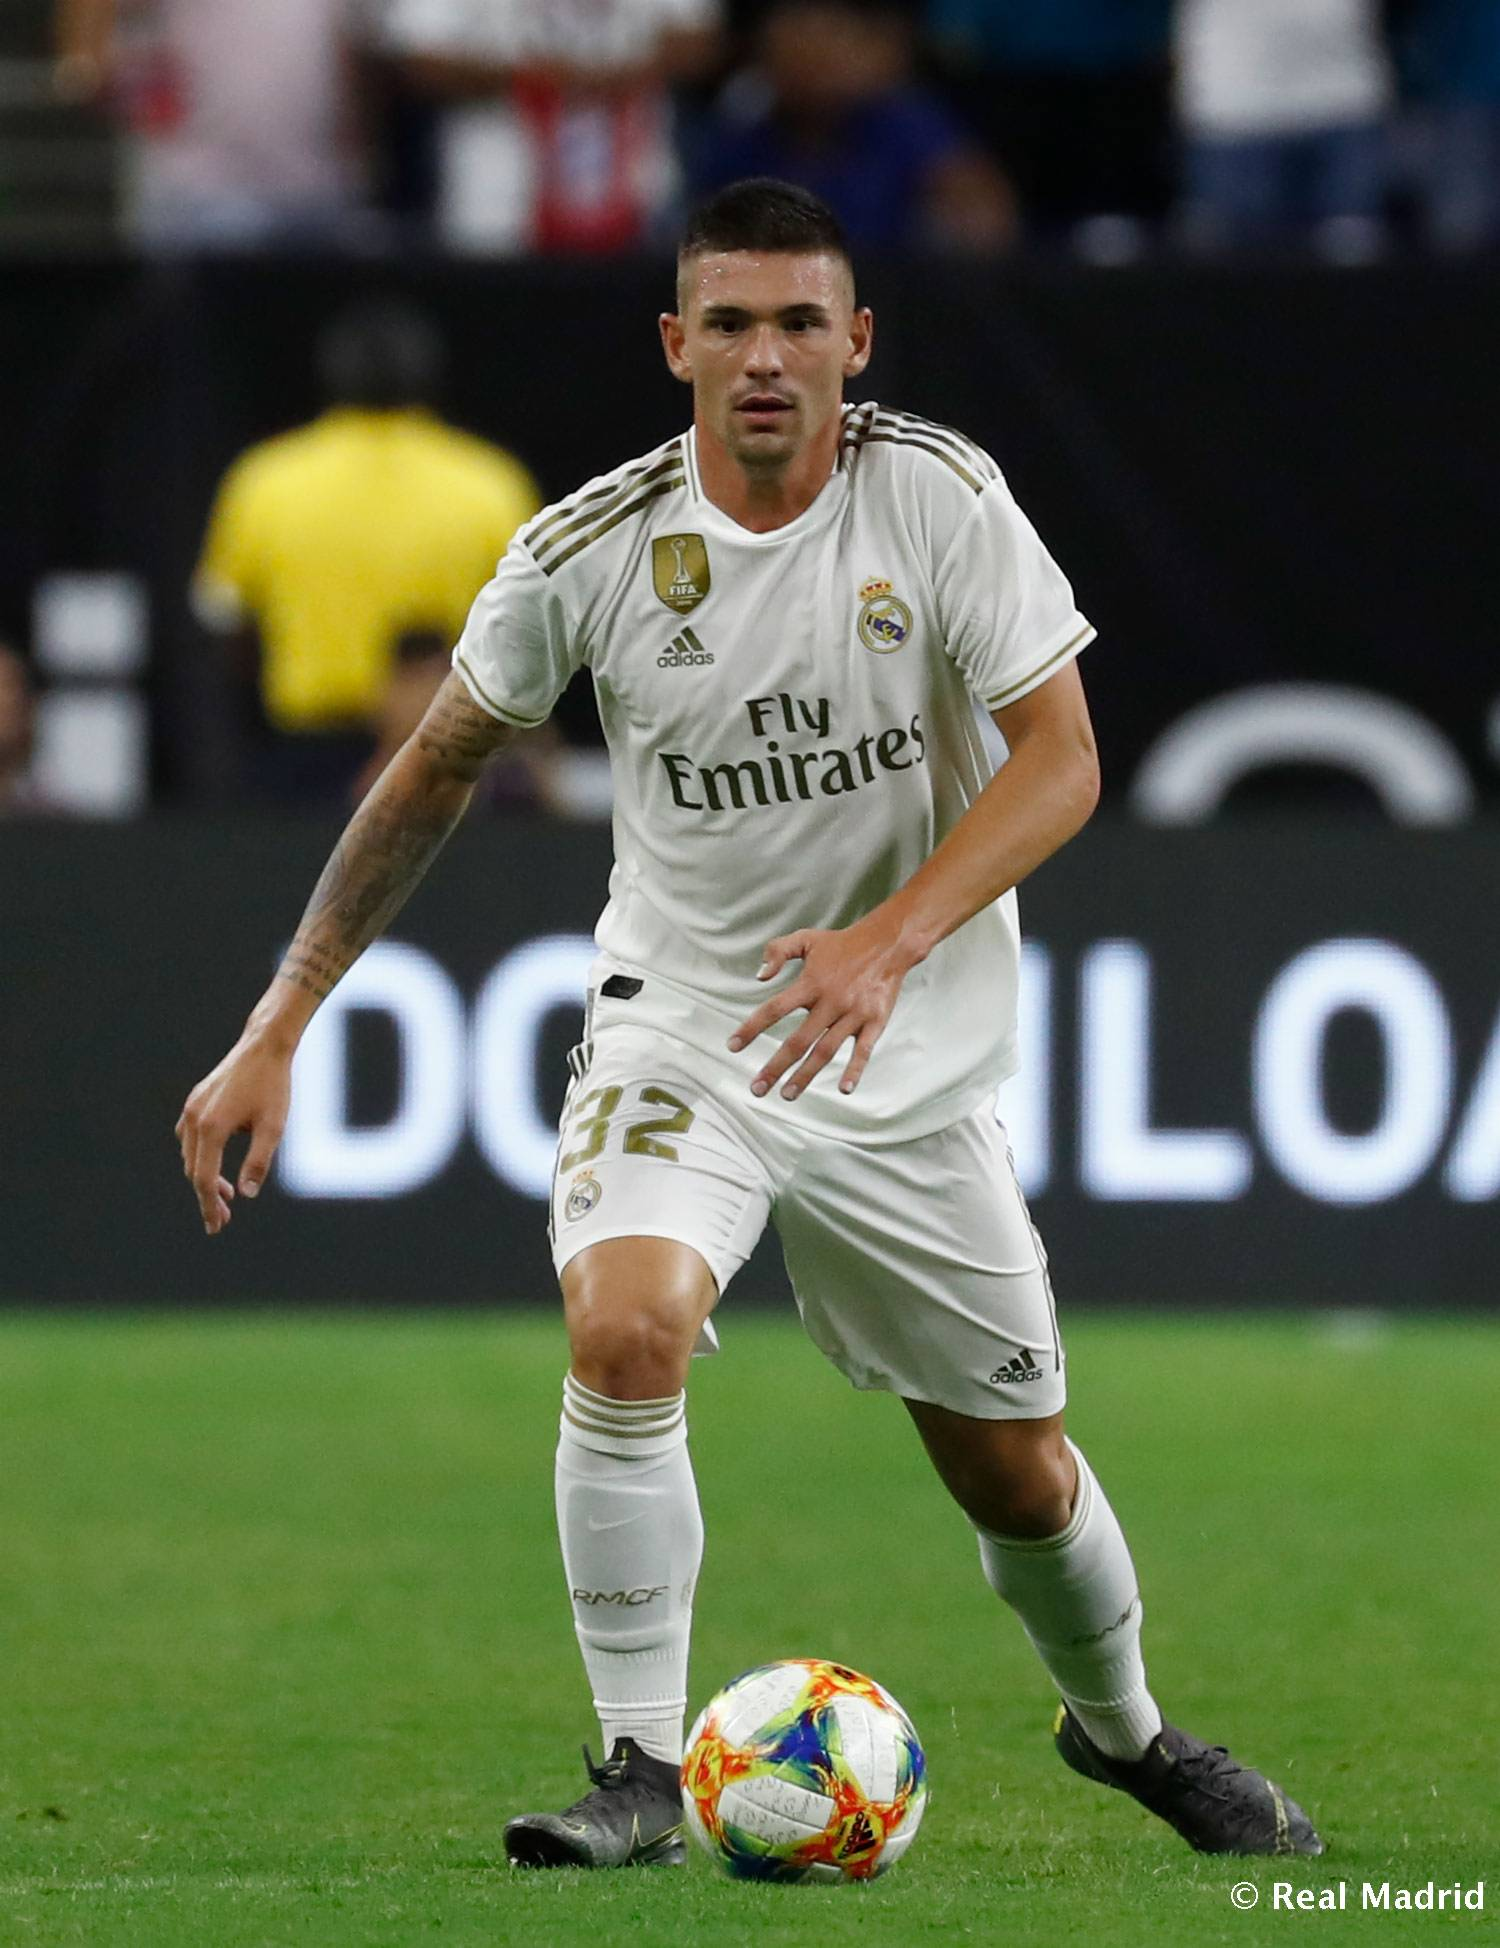 Real Madrid - Debut de De la Fuente con el Real Madrid - 21-07-2019